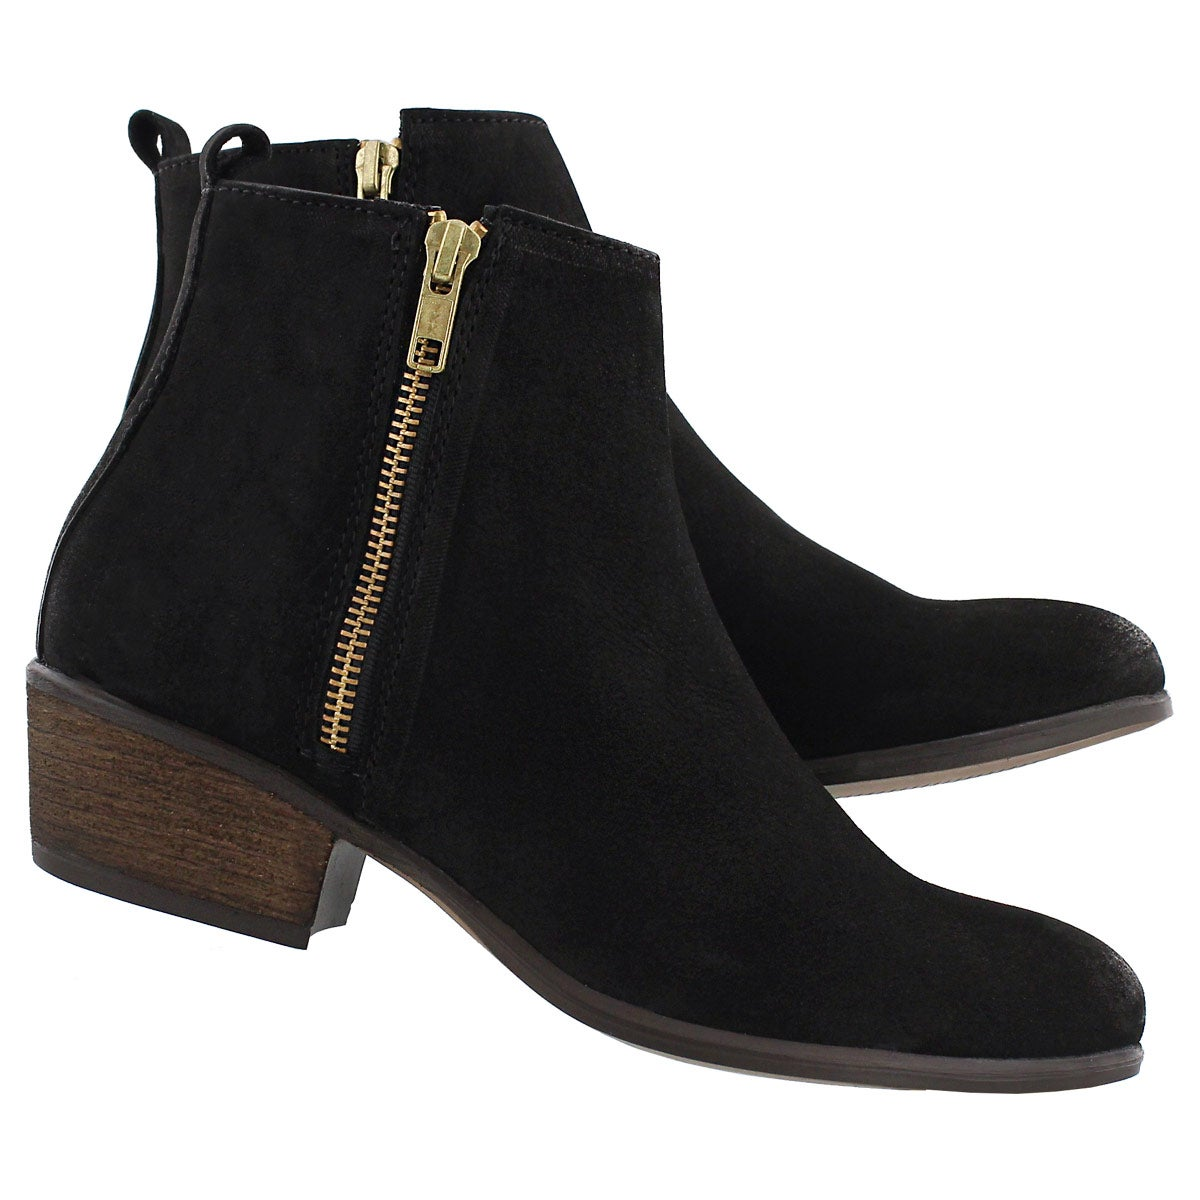 Lds Neovista blk nbck zip up ankle boot